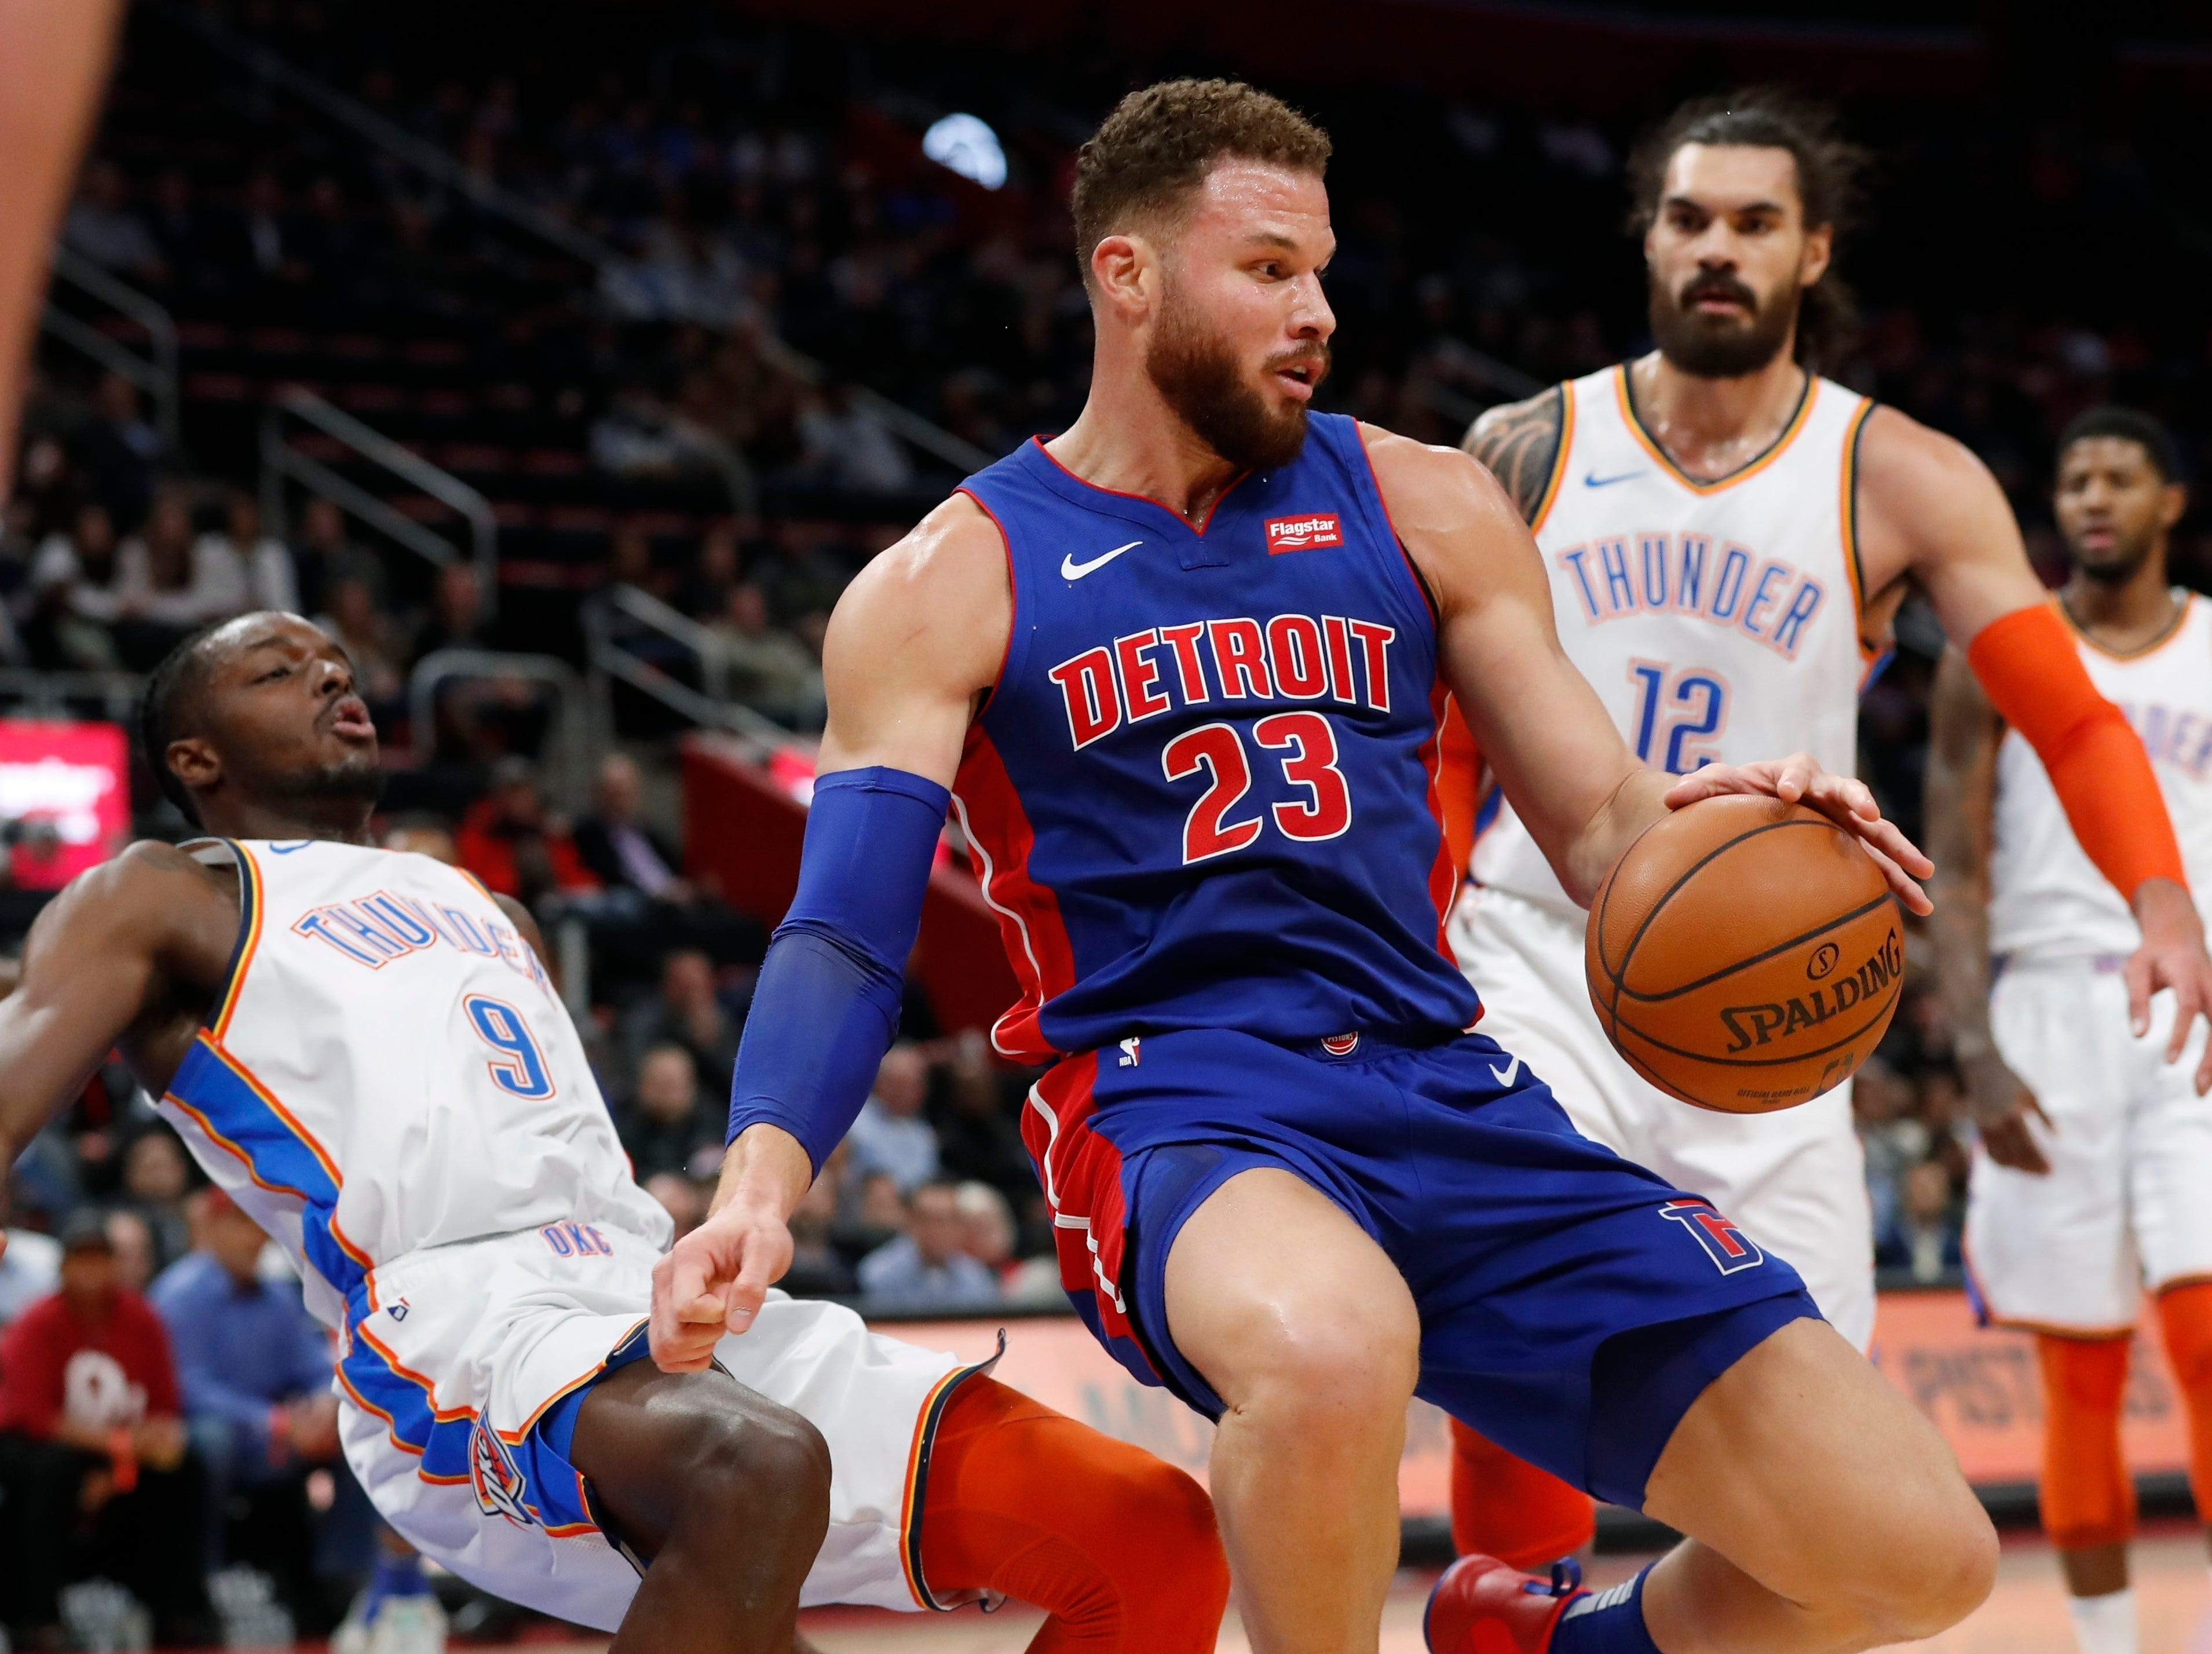 Detroit Pistons forward Blake Griffin (23) fouls Oklahoma City Thunder forward Jerami Grant (9) during the first half of an NBA basketball game, Monday, Dec. 3, 2018, in Detroit.